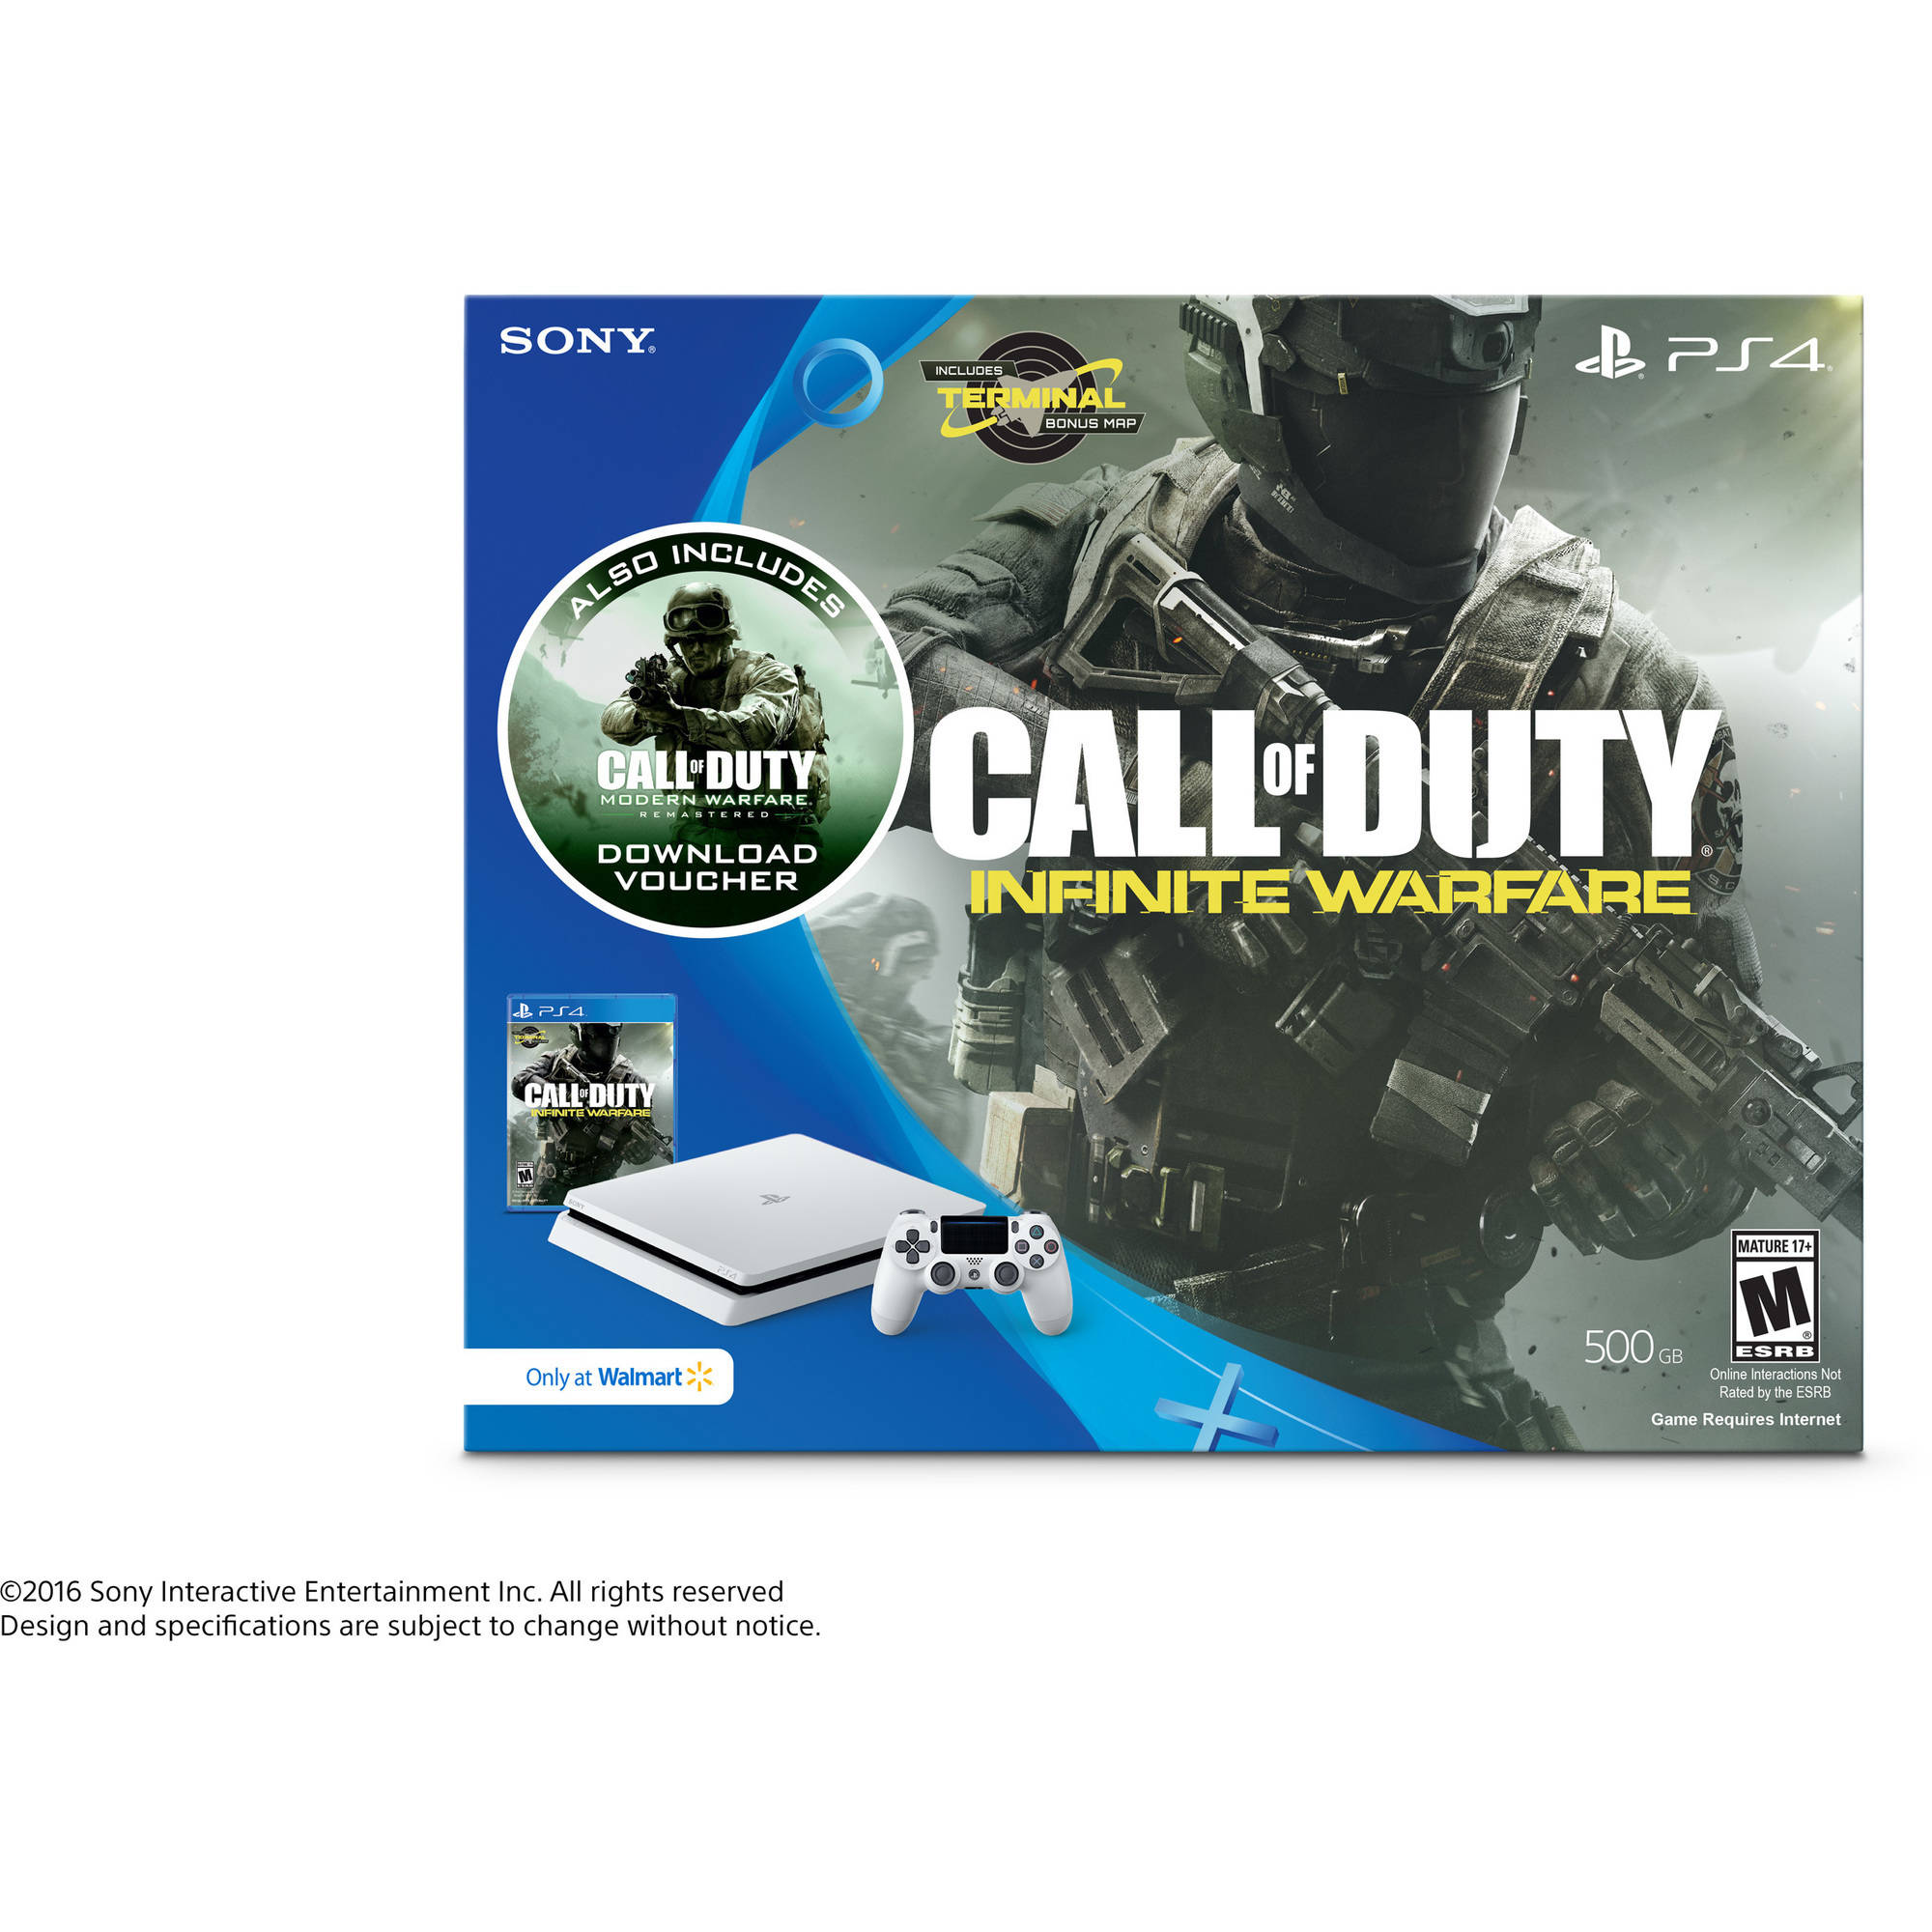 Playstation 4 Call of Duty Infinite Warfare 500GB (Walmart Exclusive) (White) by Sony